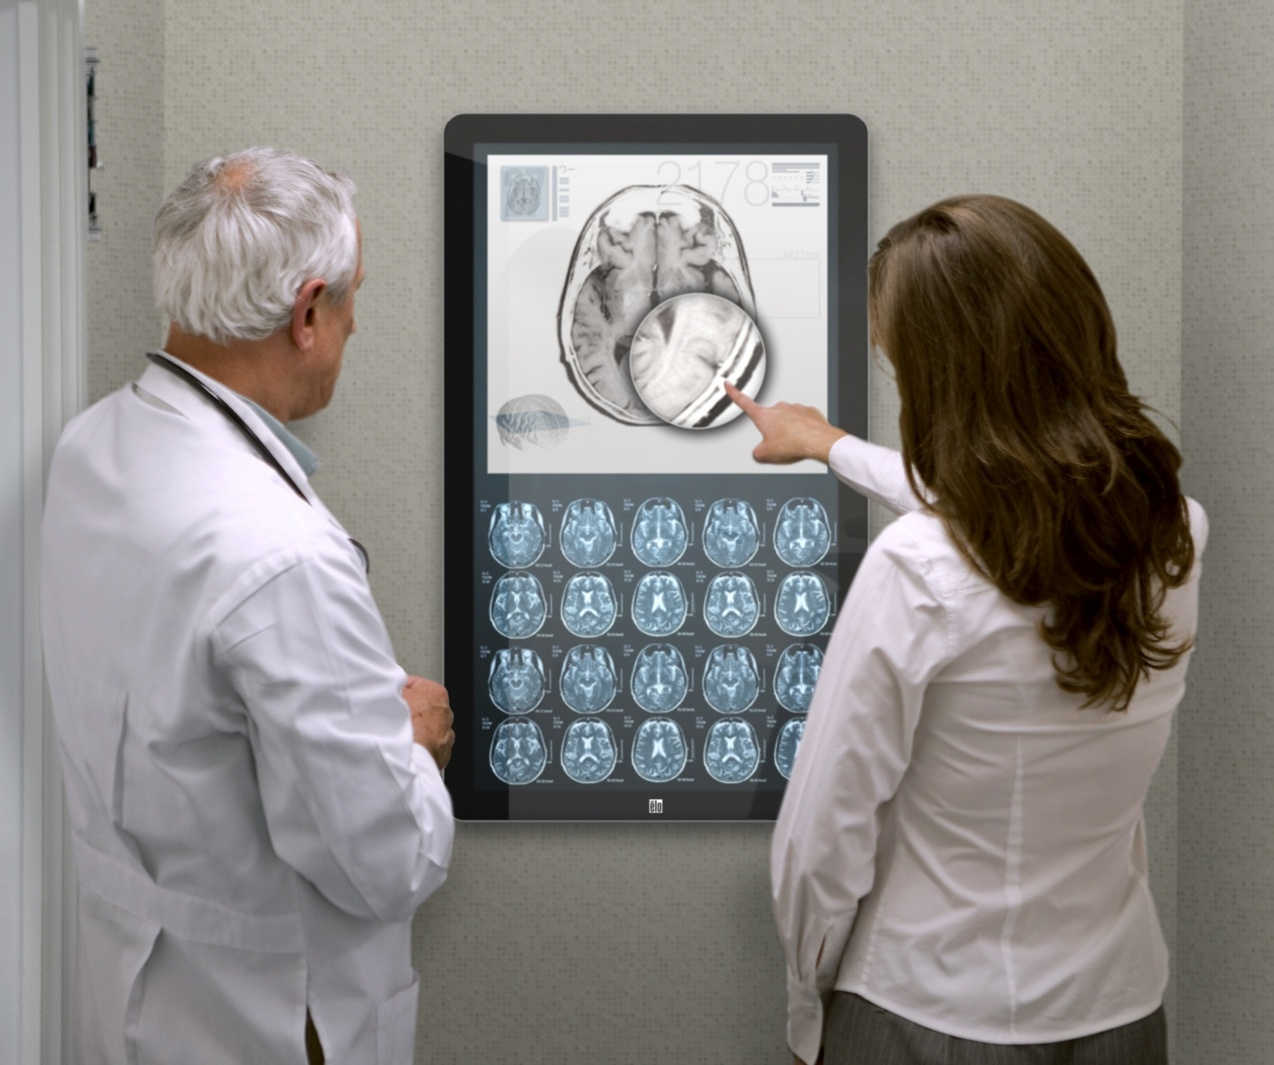 Intuitive interaction for healthcare applications